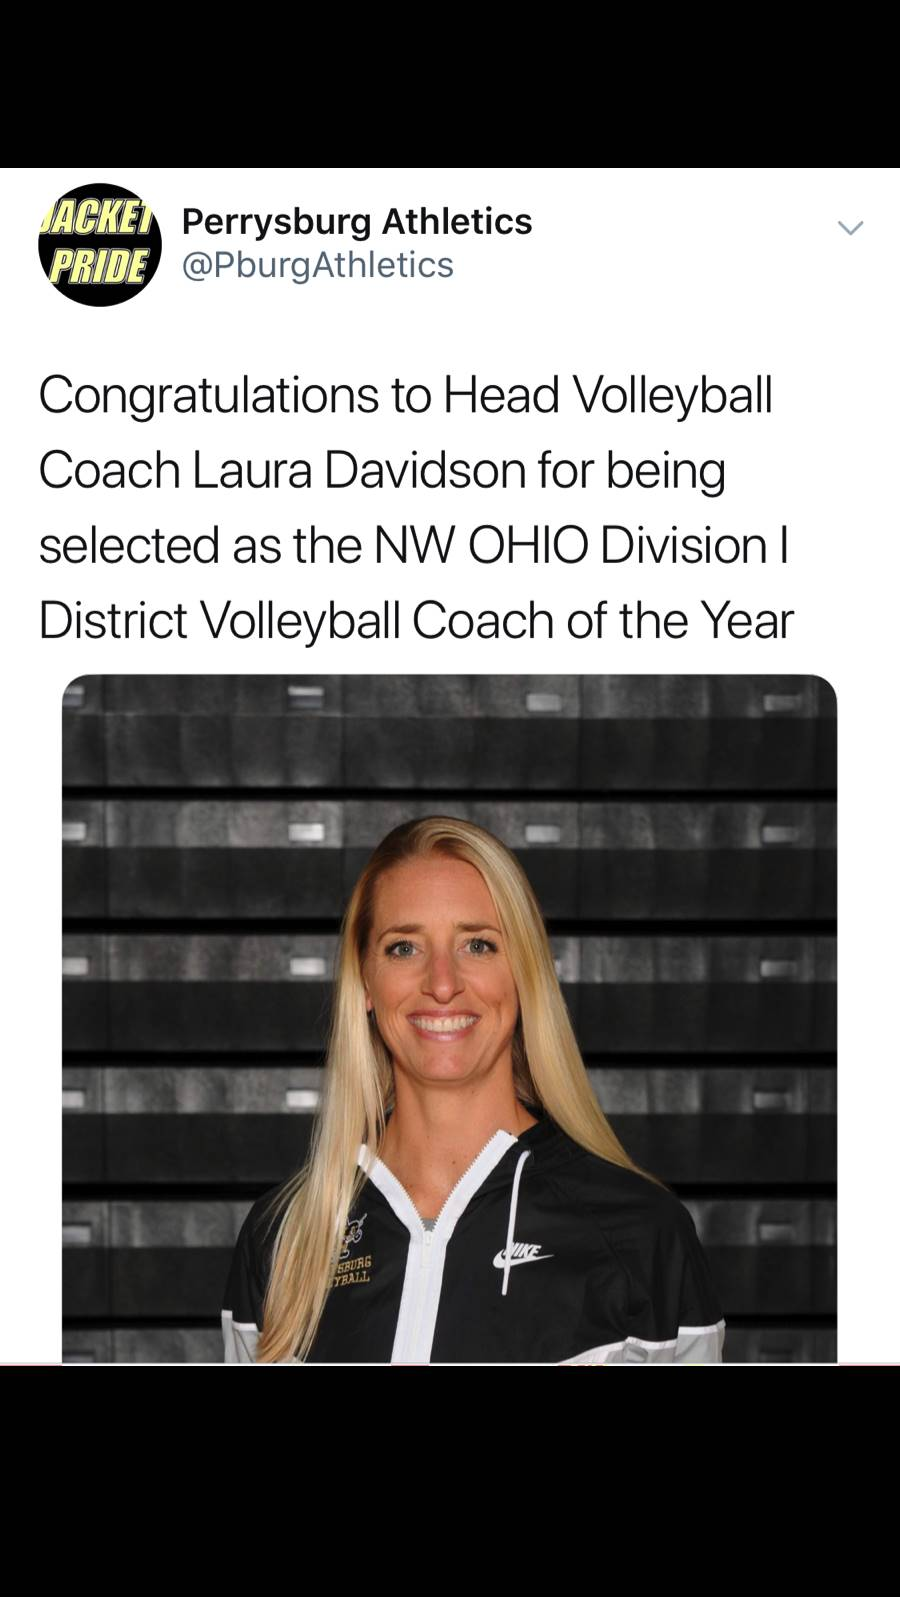 Coach Davidson NW Ohio Coach of the Year 2018